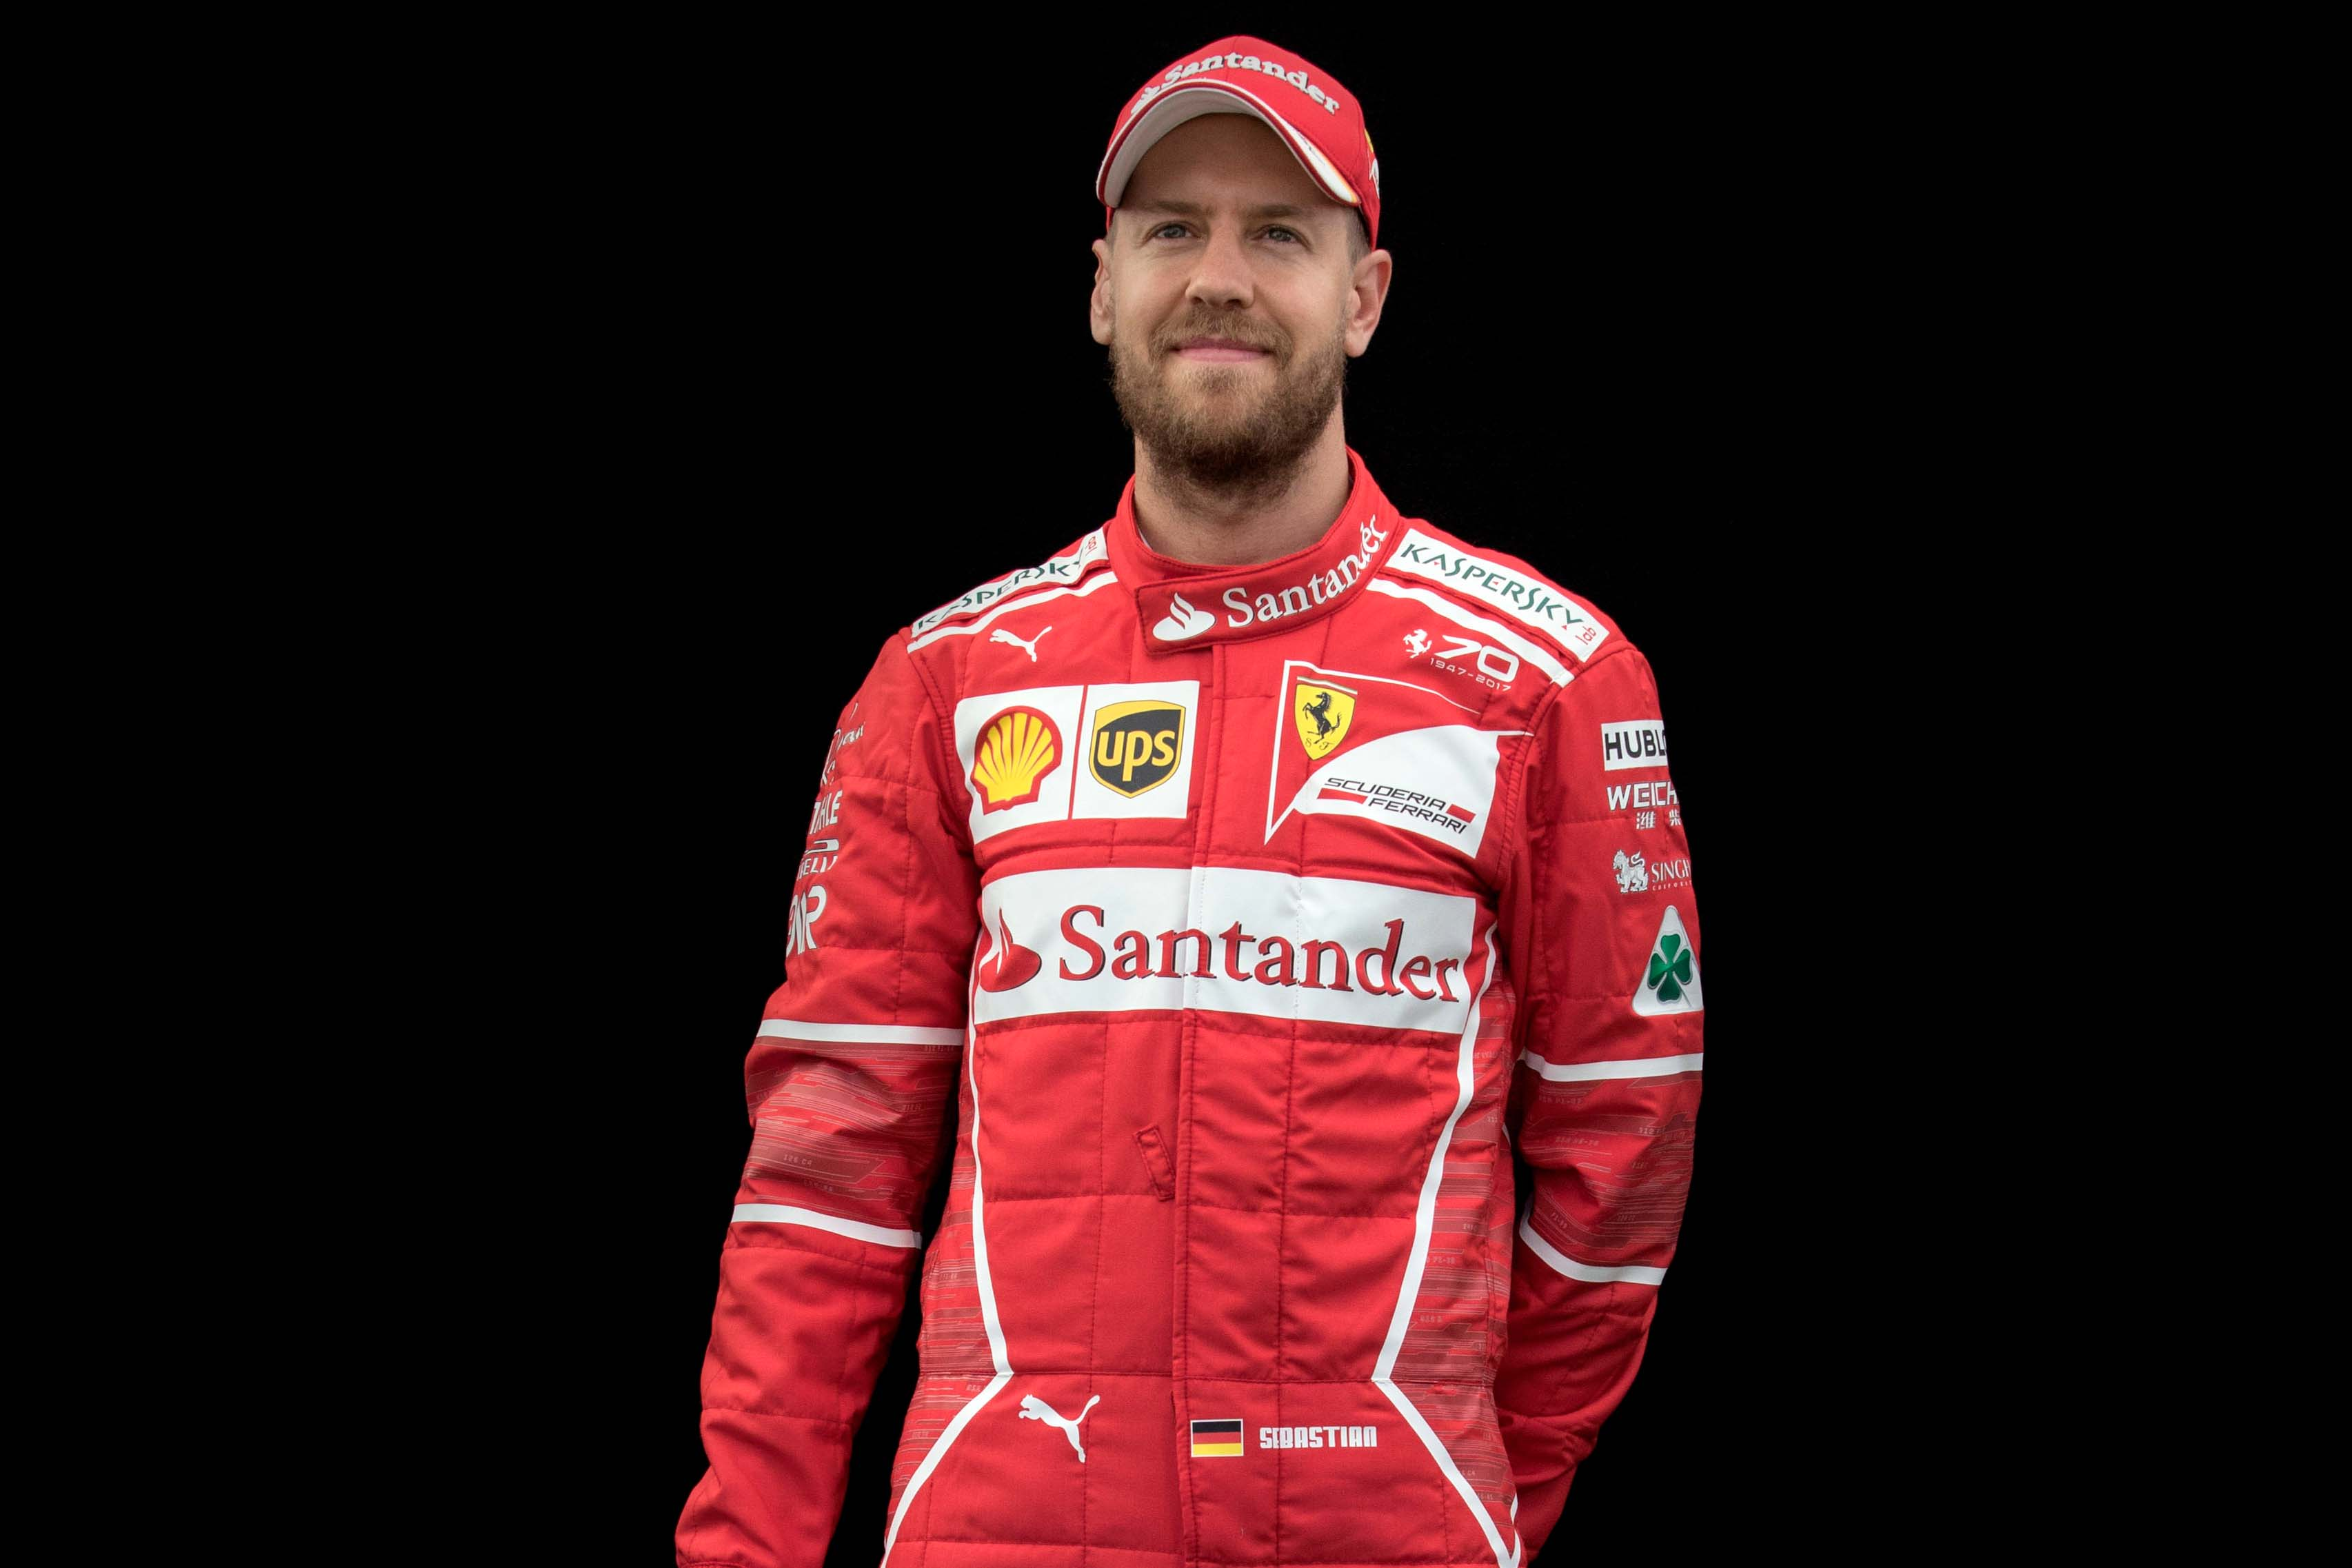 Sebastian Vettel F1i Com HD Wallpapers Download free images and photos [musssic.tk]